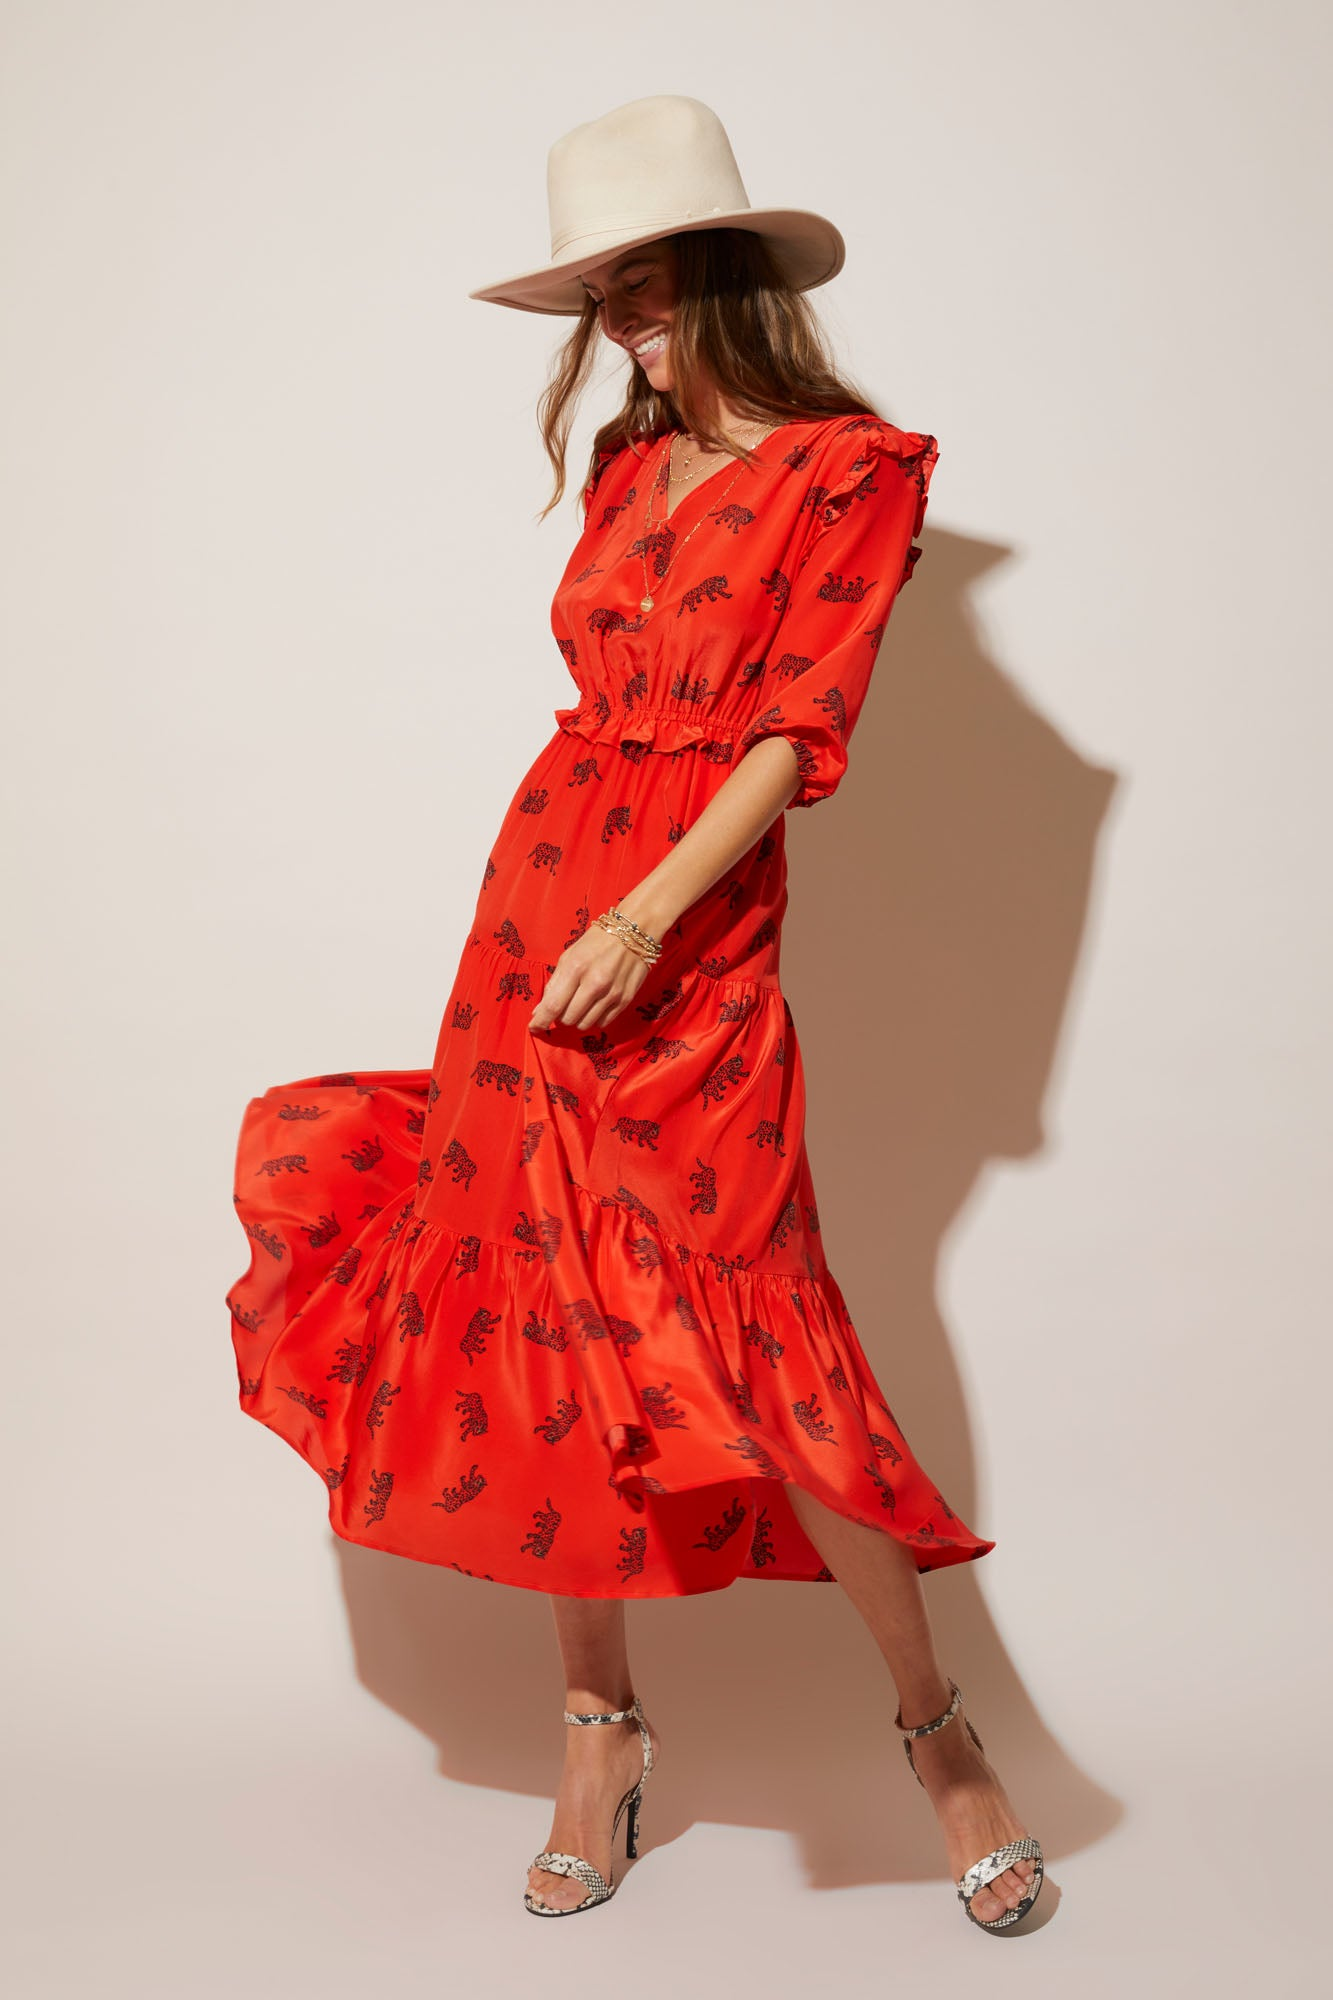 Jordan Dress | Crimson Prowler